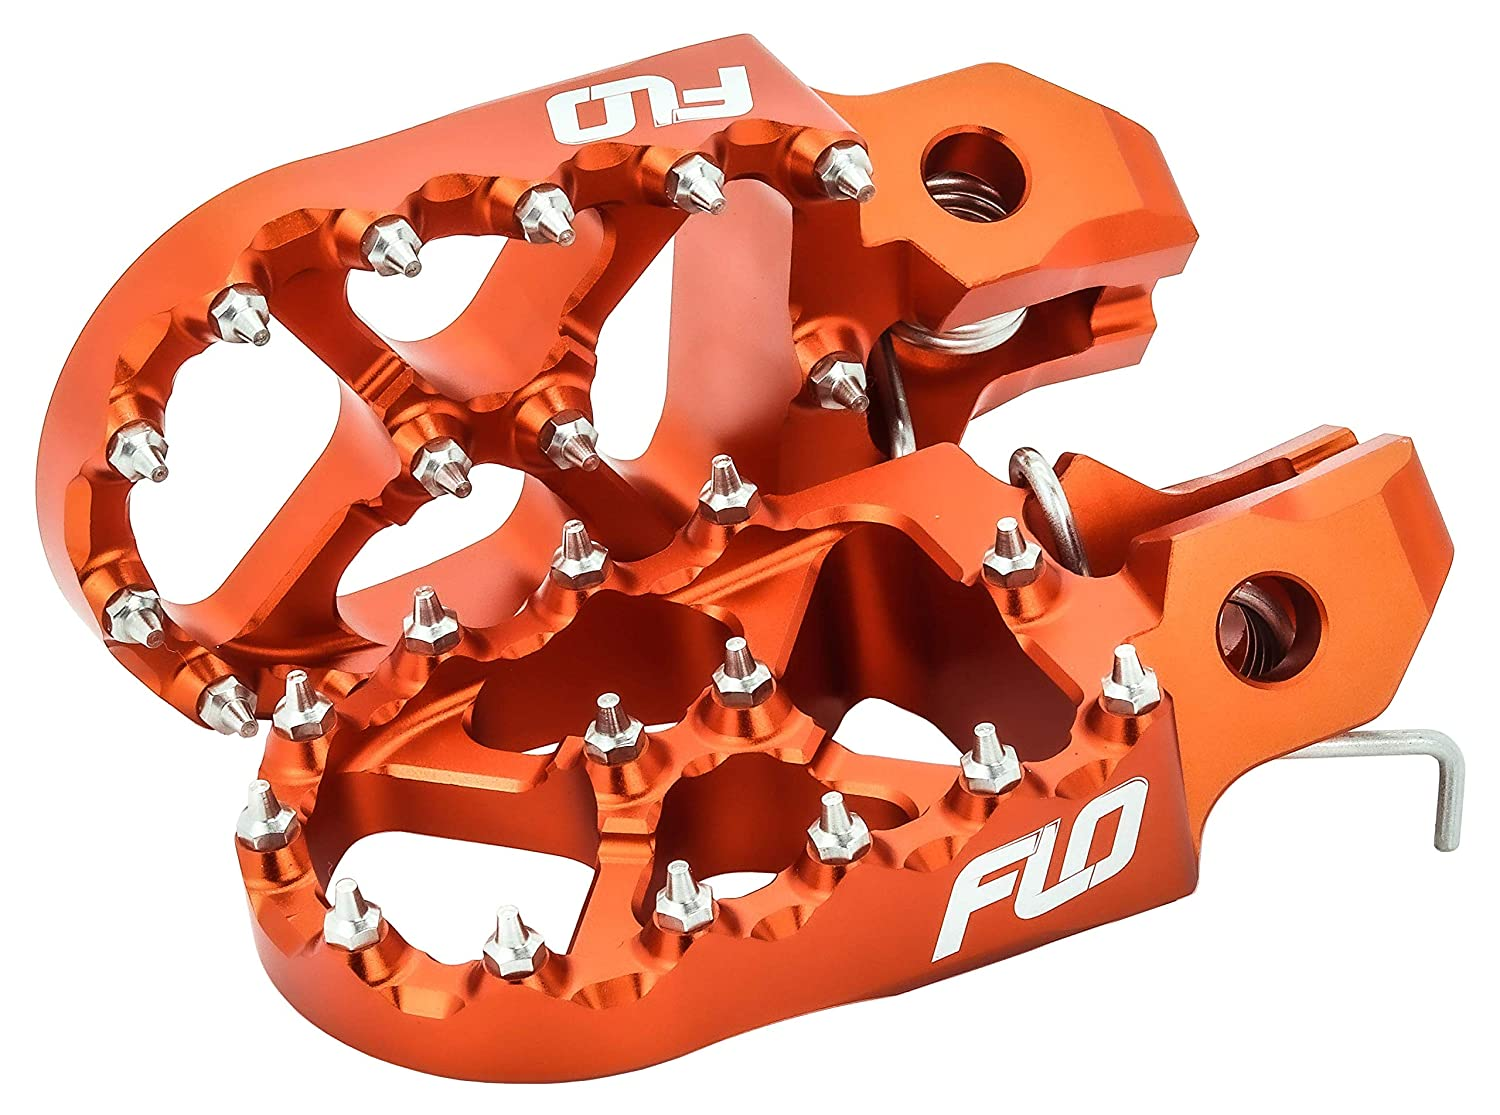 KTM Foot Pegs for 50-525 SX//SXF FPEG-795ORG Fits Flo Motorsports Foot Pegs